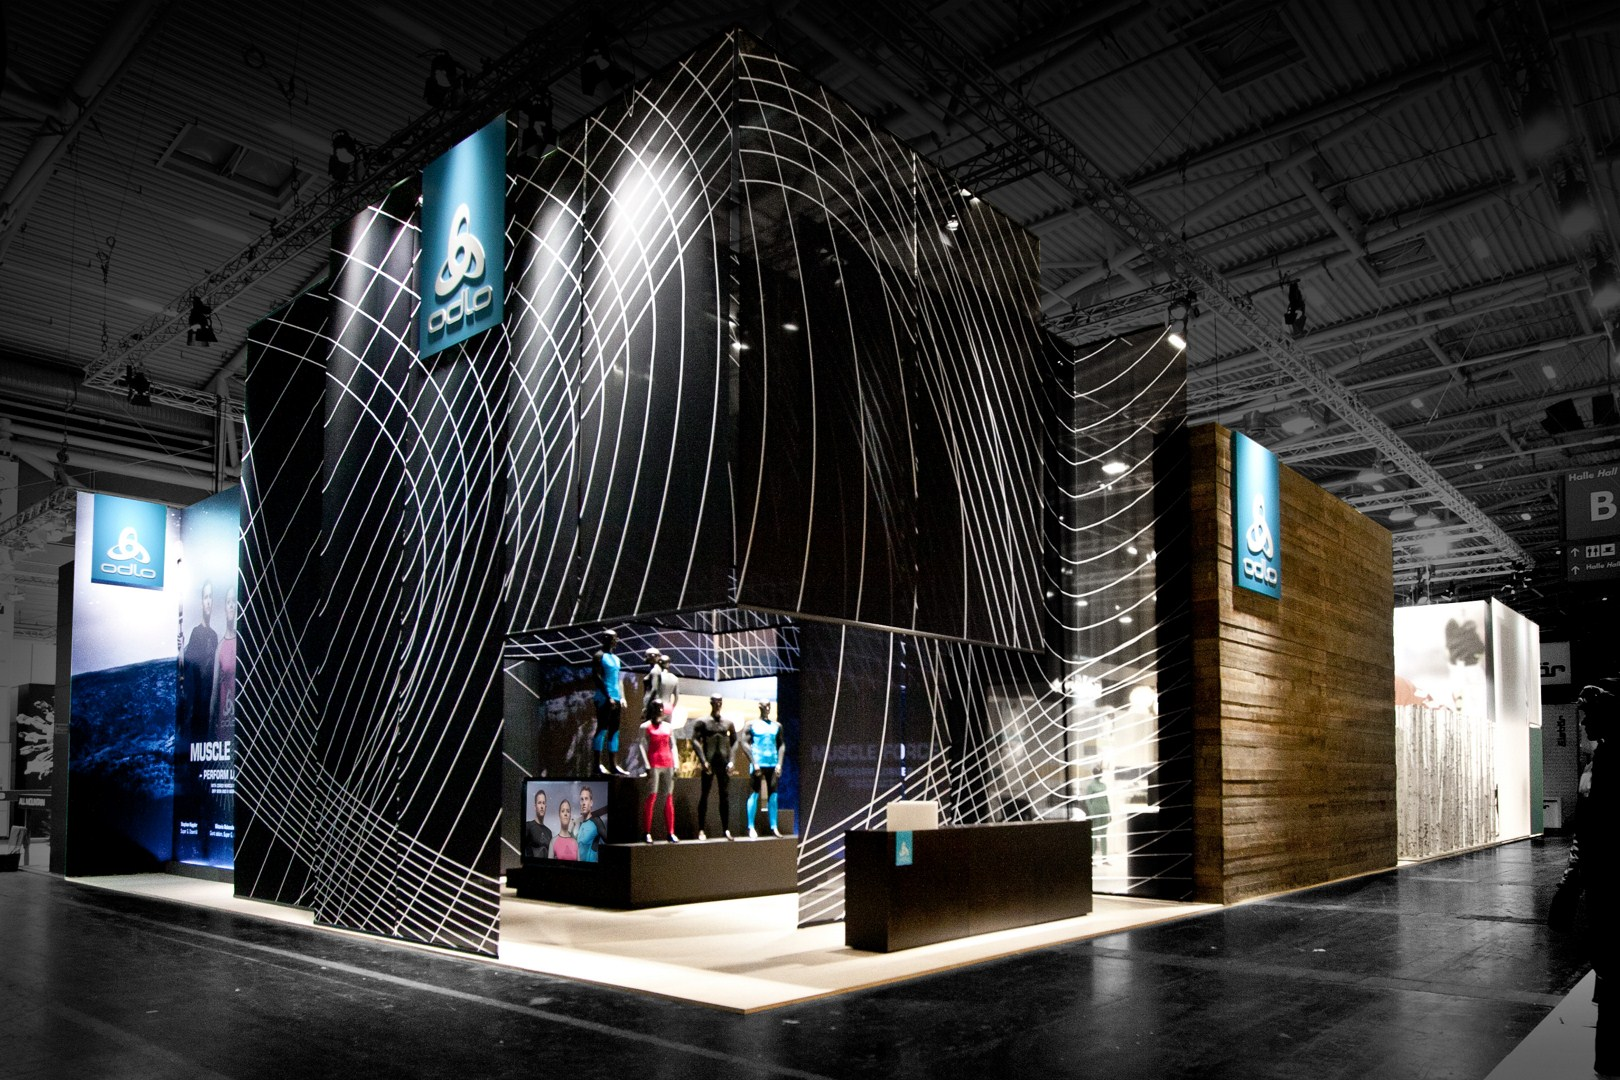 Laborrotwang berlin odlo at ispo 2013 for Design hotel chiemsee